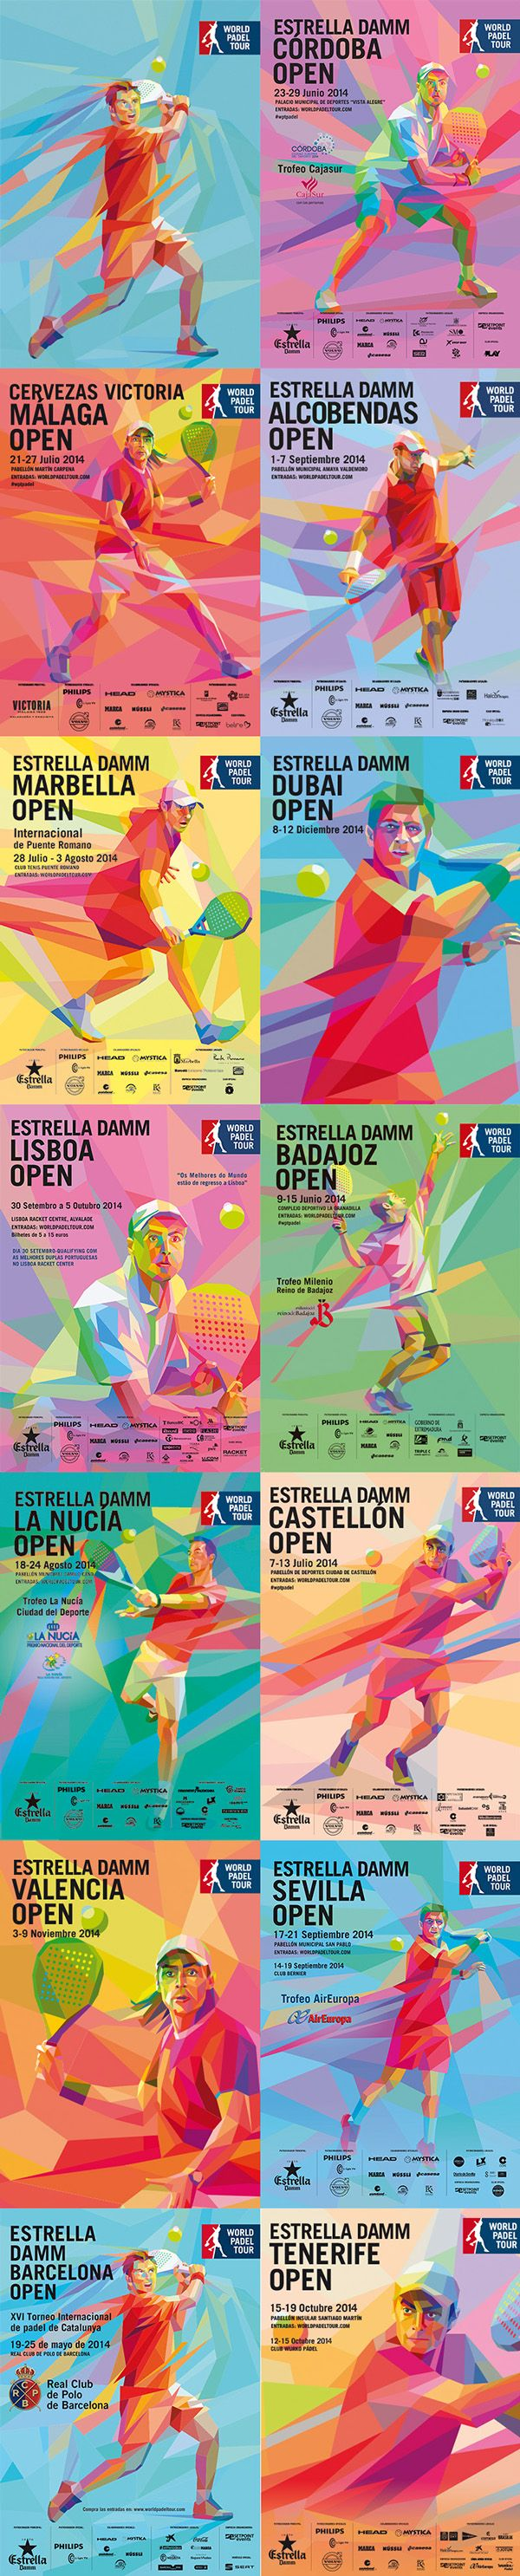 Estrella Damm World Padel Tour on Digital Art Served